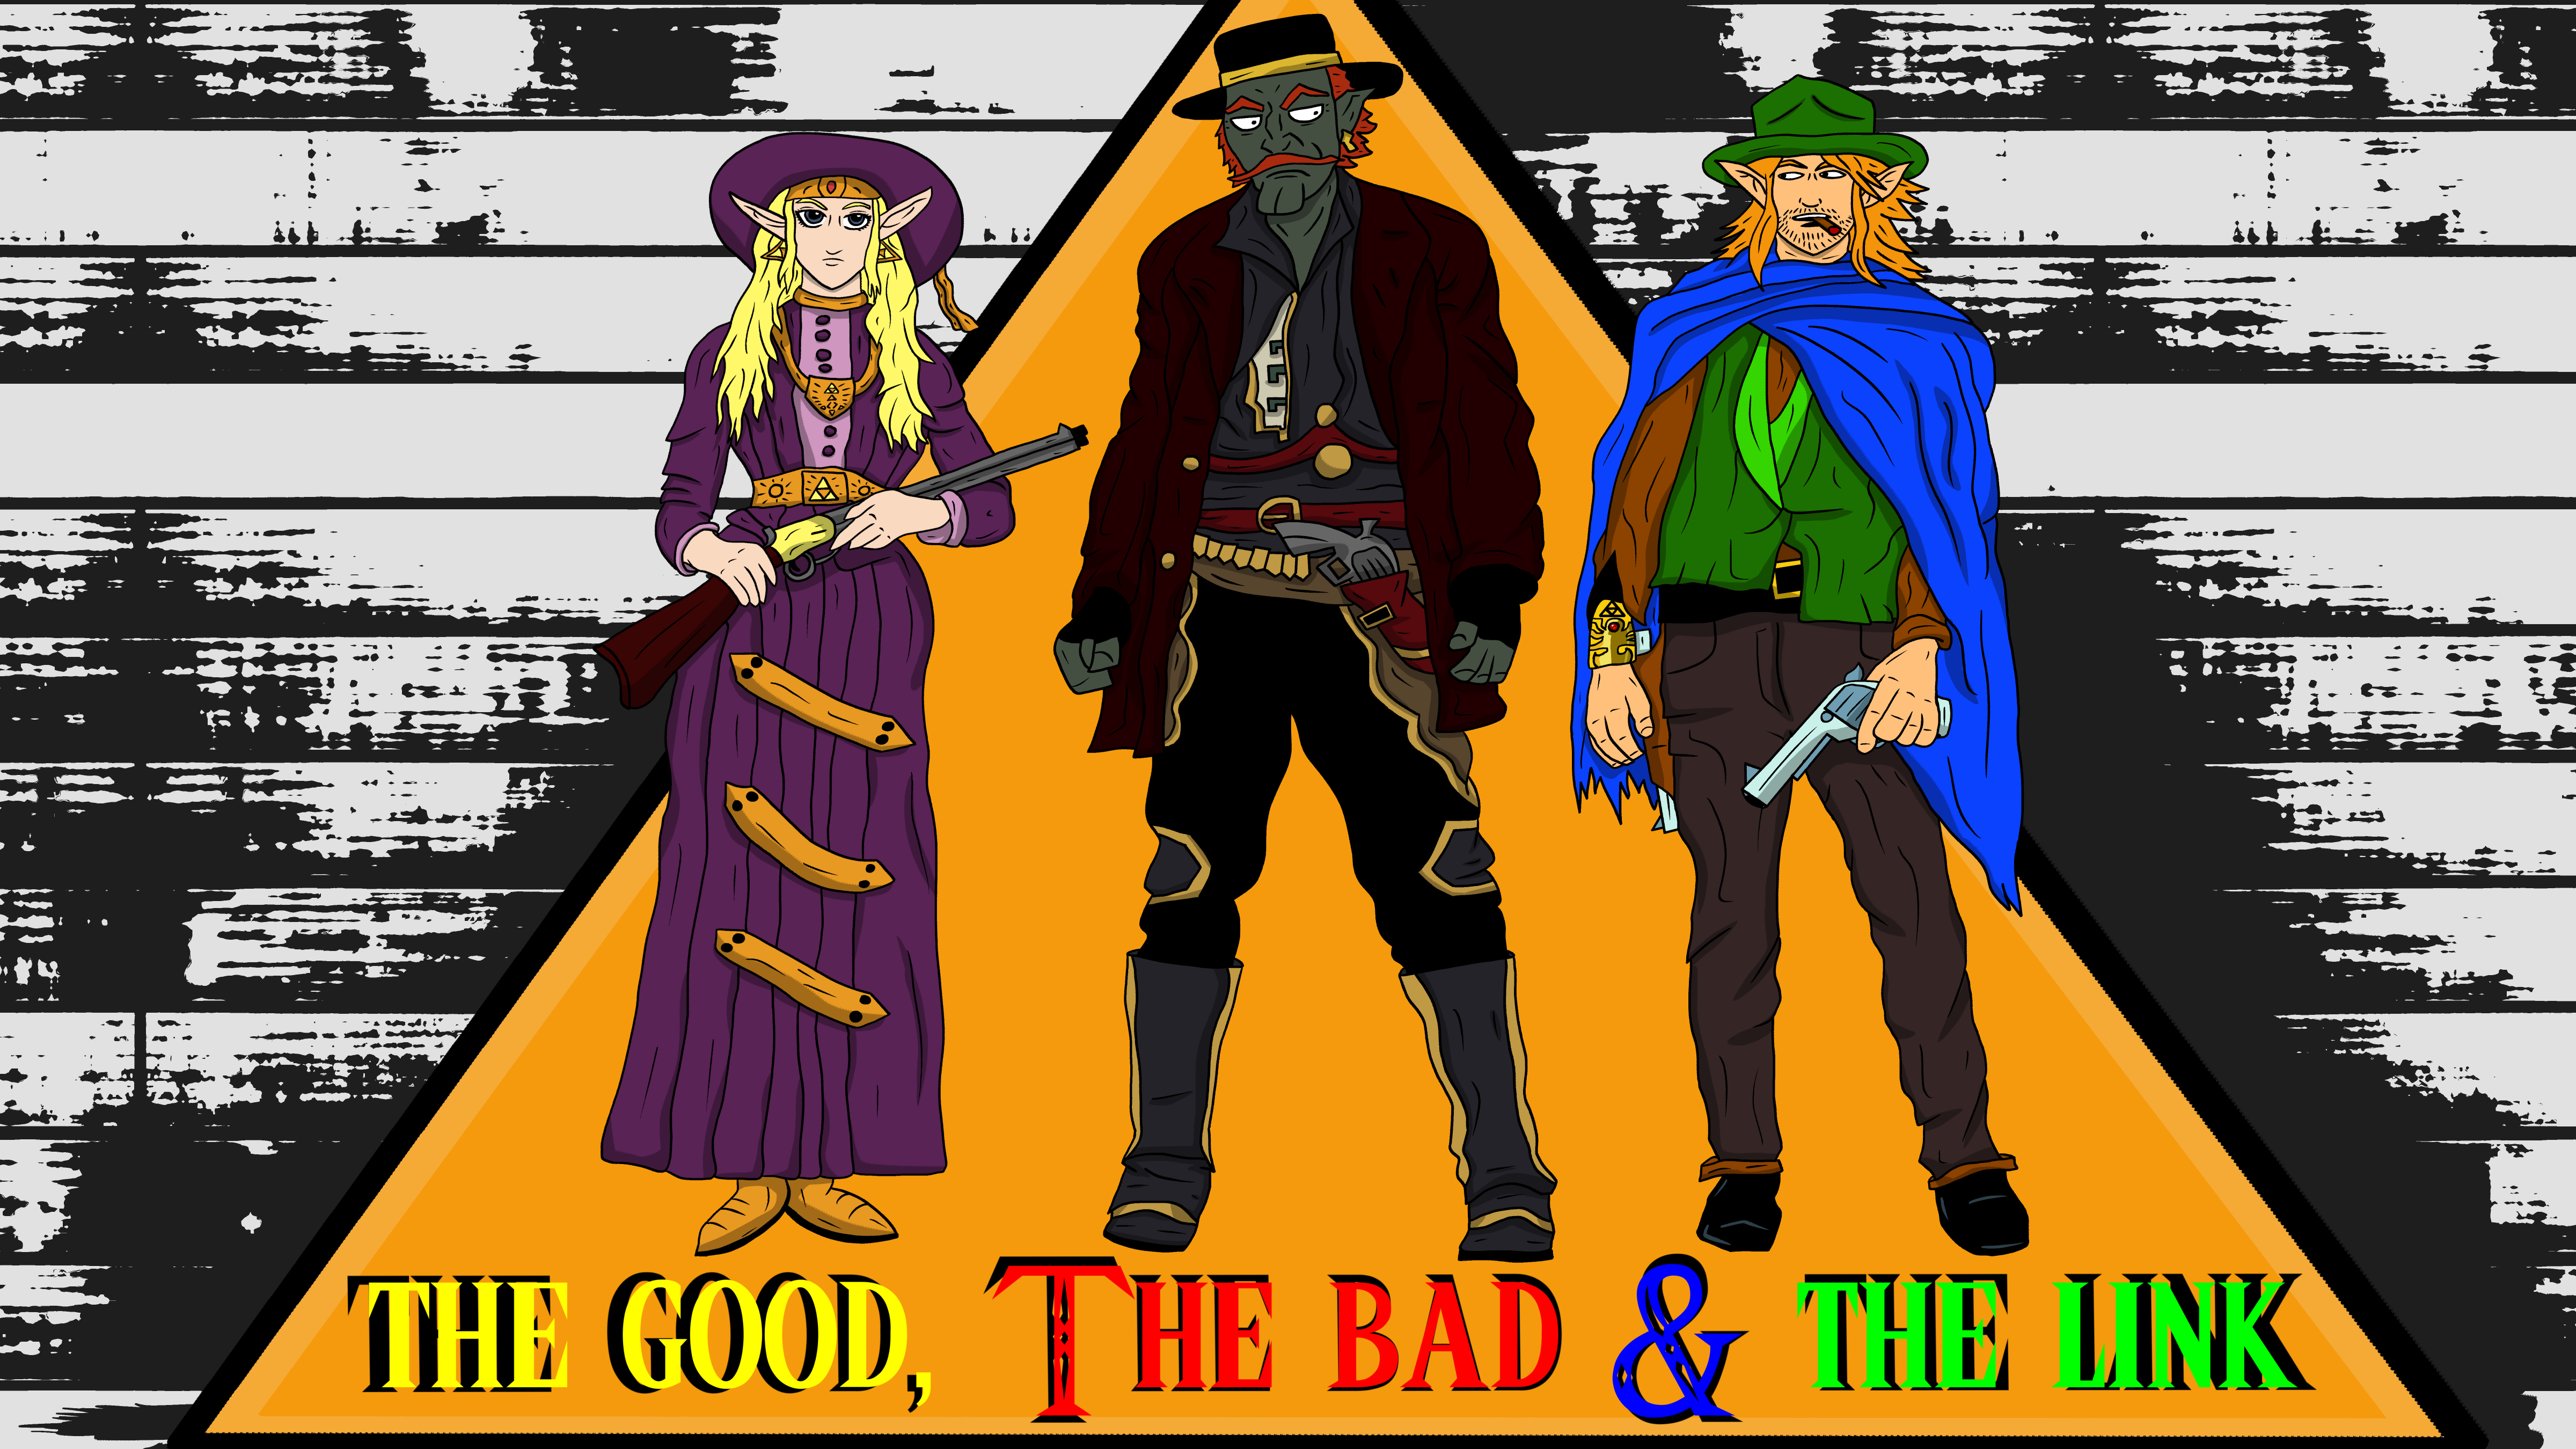 The Good The Bad and The Link